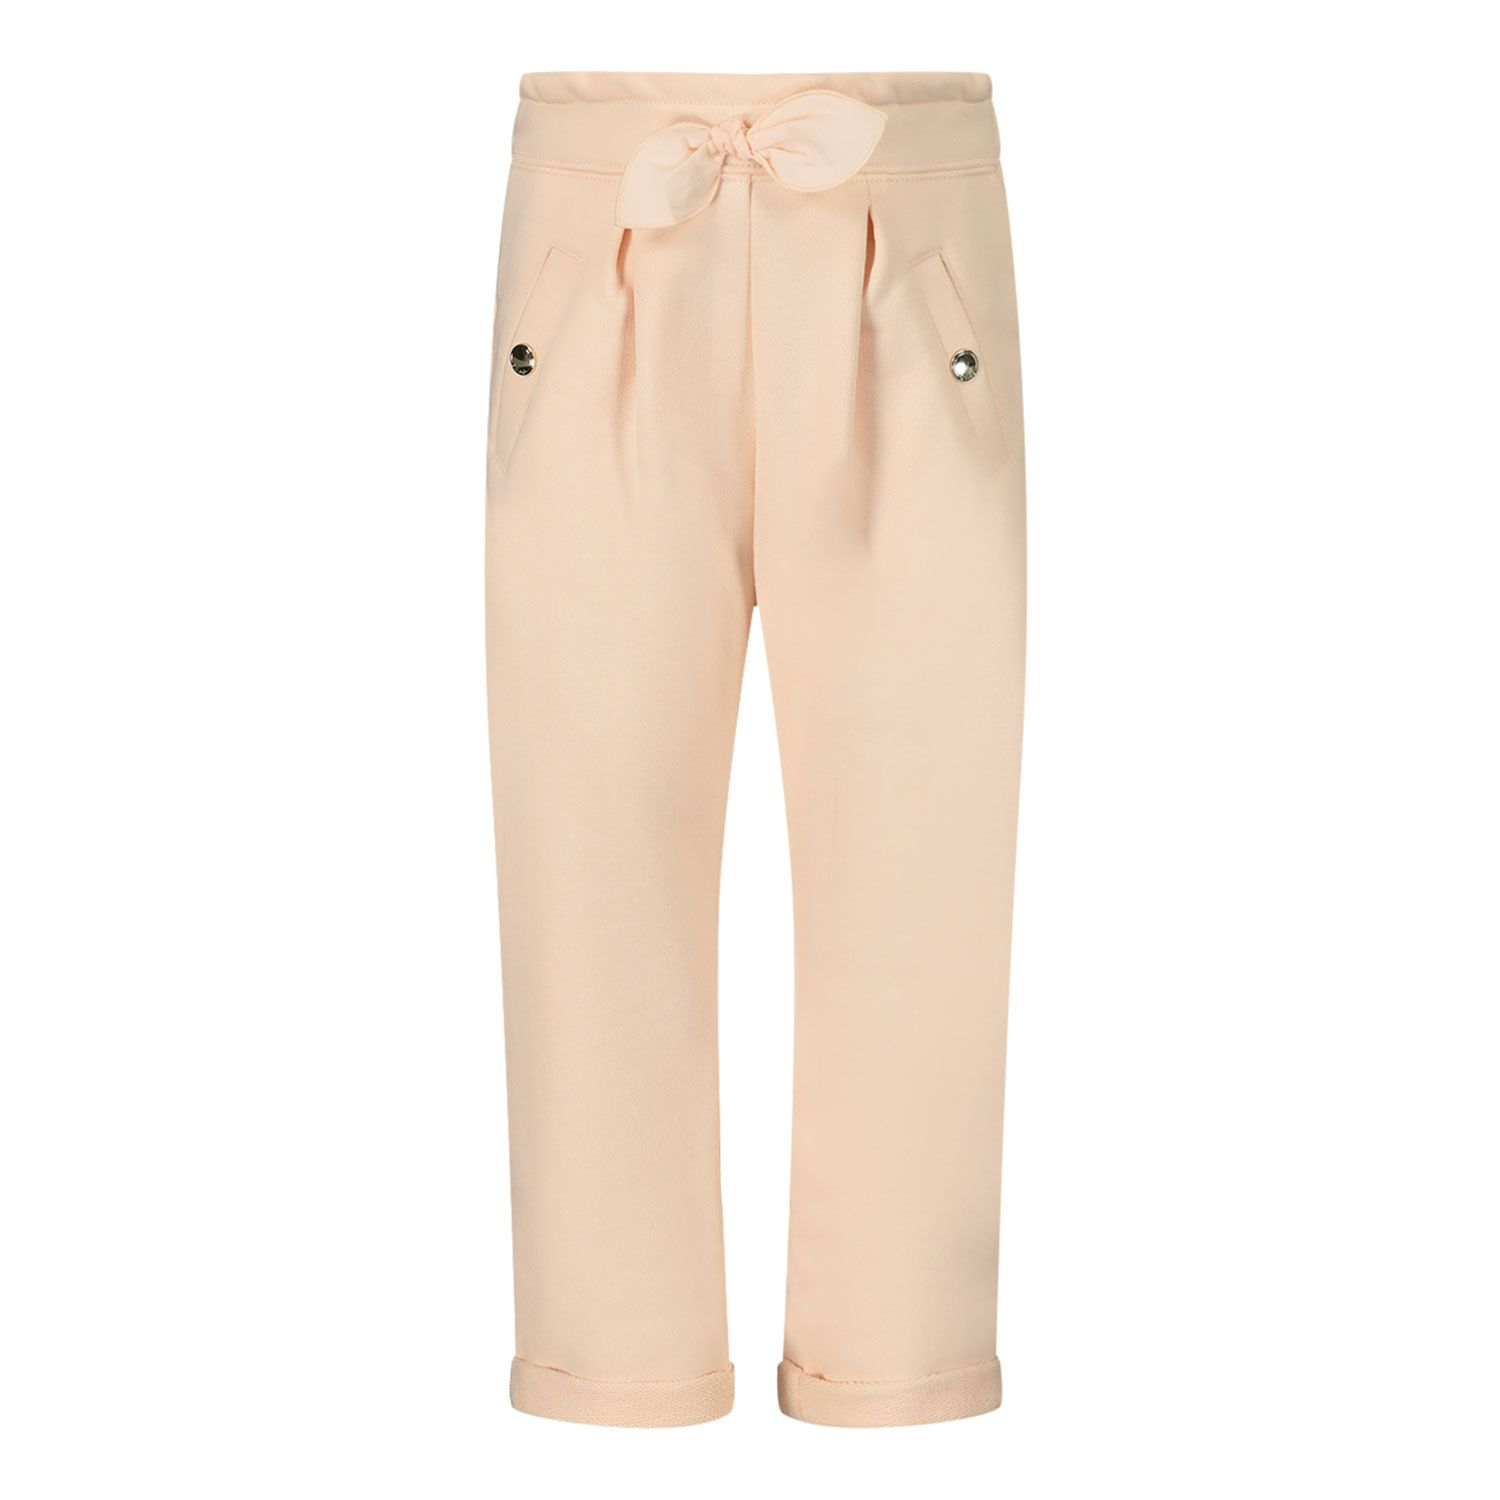 Picture of Chloé C04189 baby pants salmon